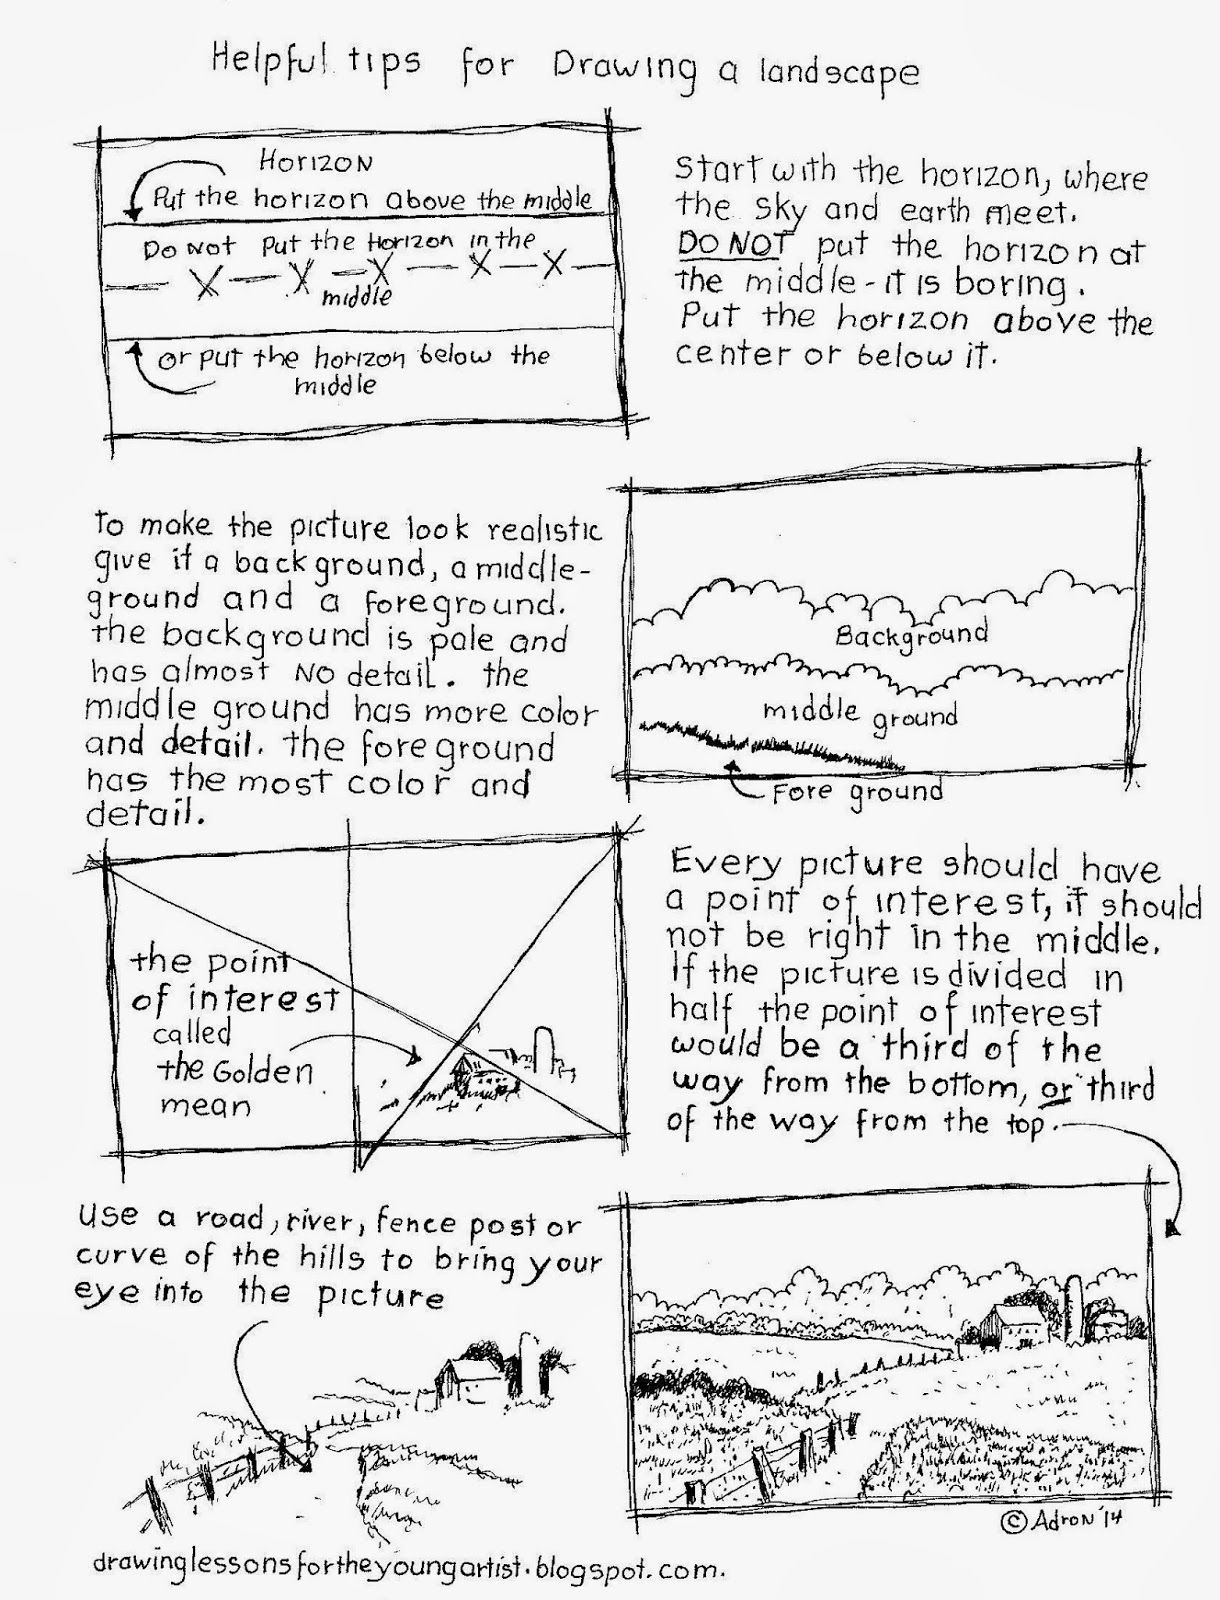 How To Draw Worksheets For The Young Artist Helpful Tips